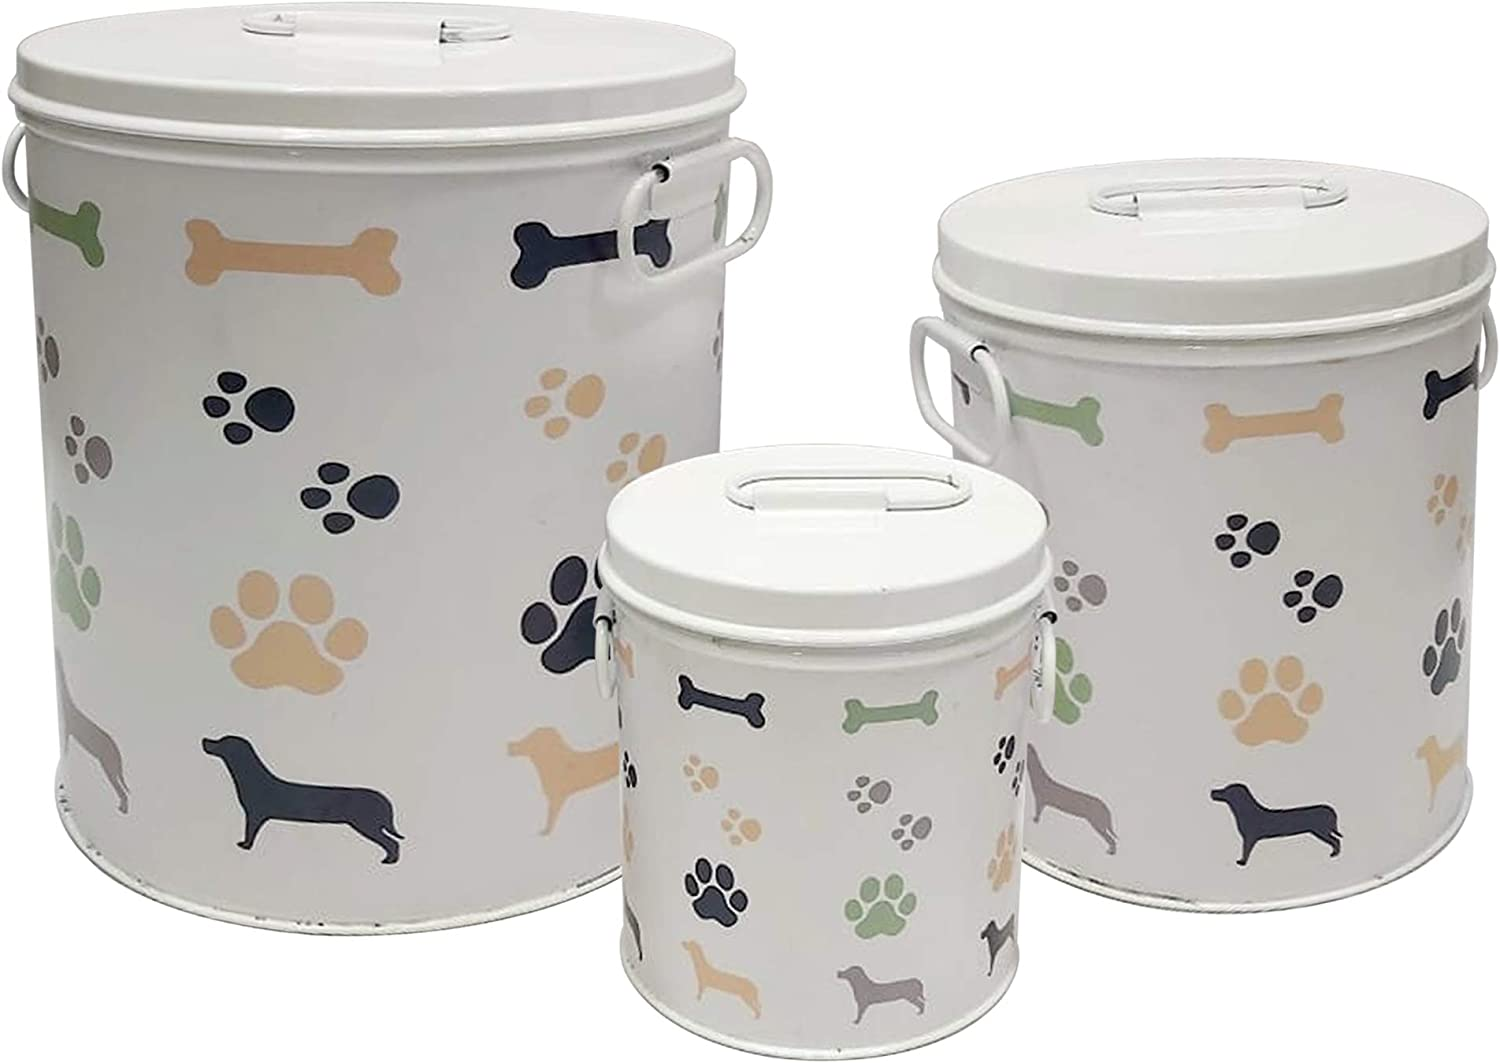 nu steel metal White 3 Pc set Jumbo Pet Canister with bone, paw, dog prints, Dog Food Treat Storage Container Jar with Lid, Tight Fitting Lids for Dog Biscuit Cookies